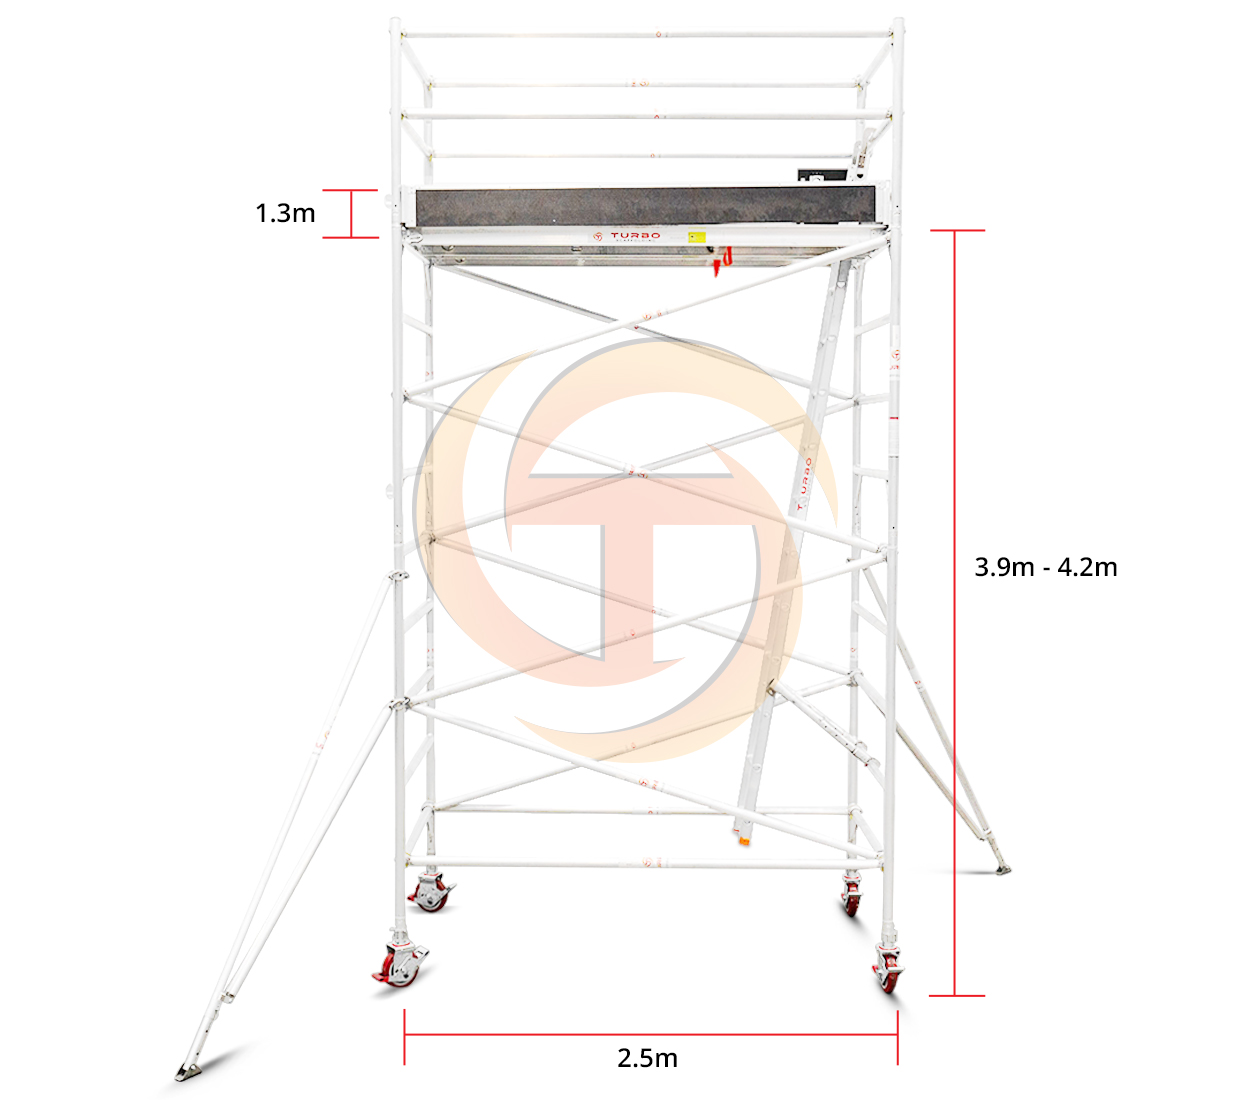 3.9m – 4.2m Wide Mobile Tower (Standing Height)